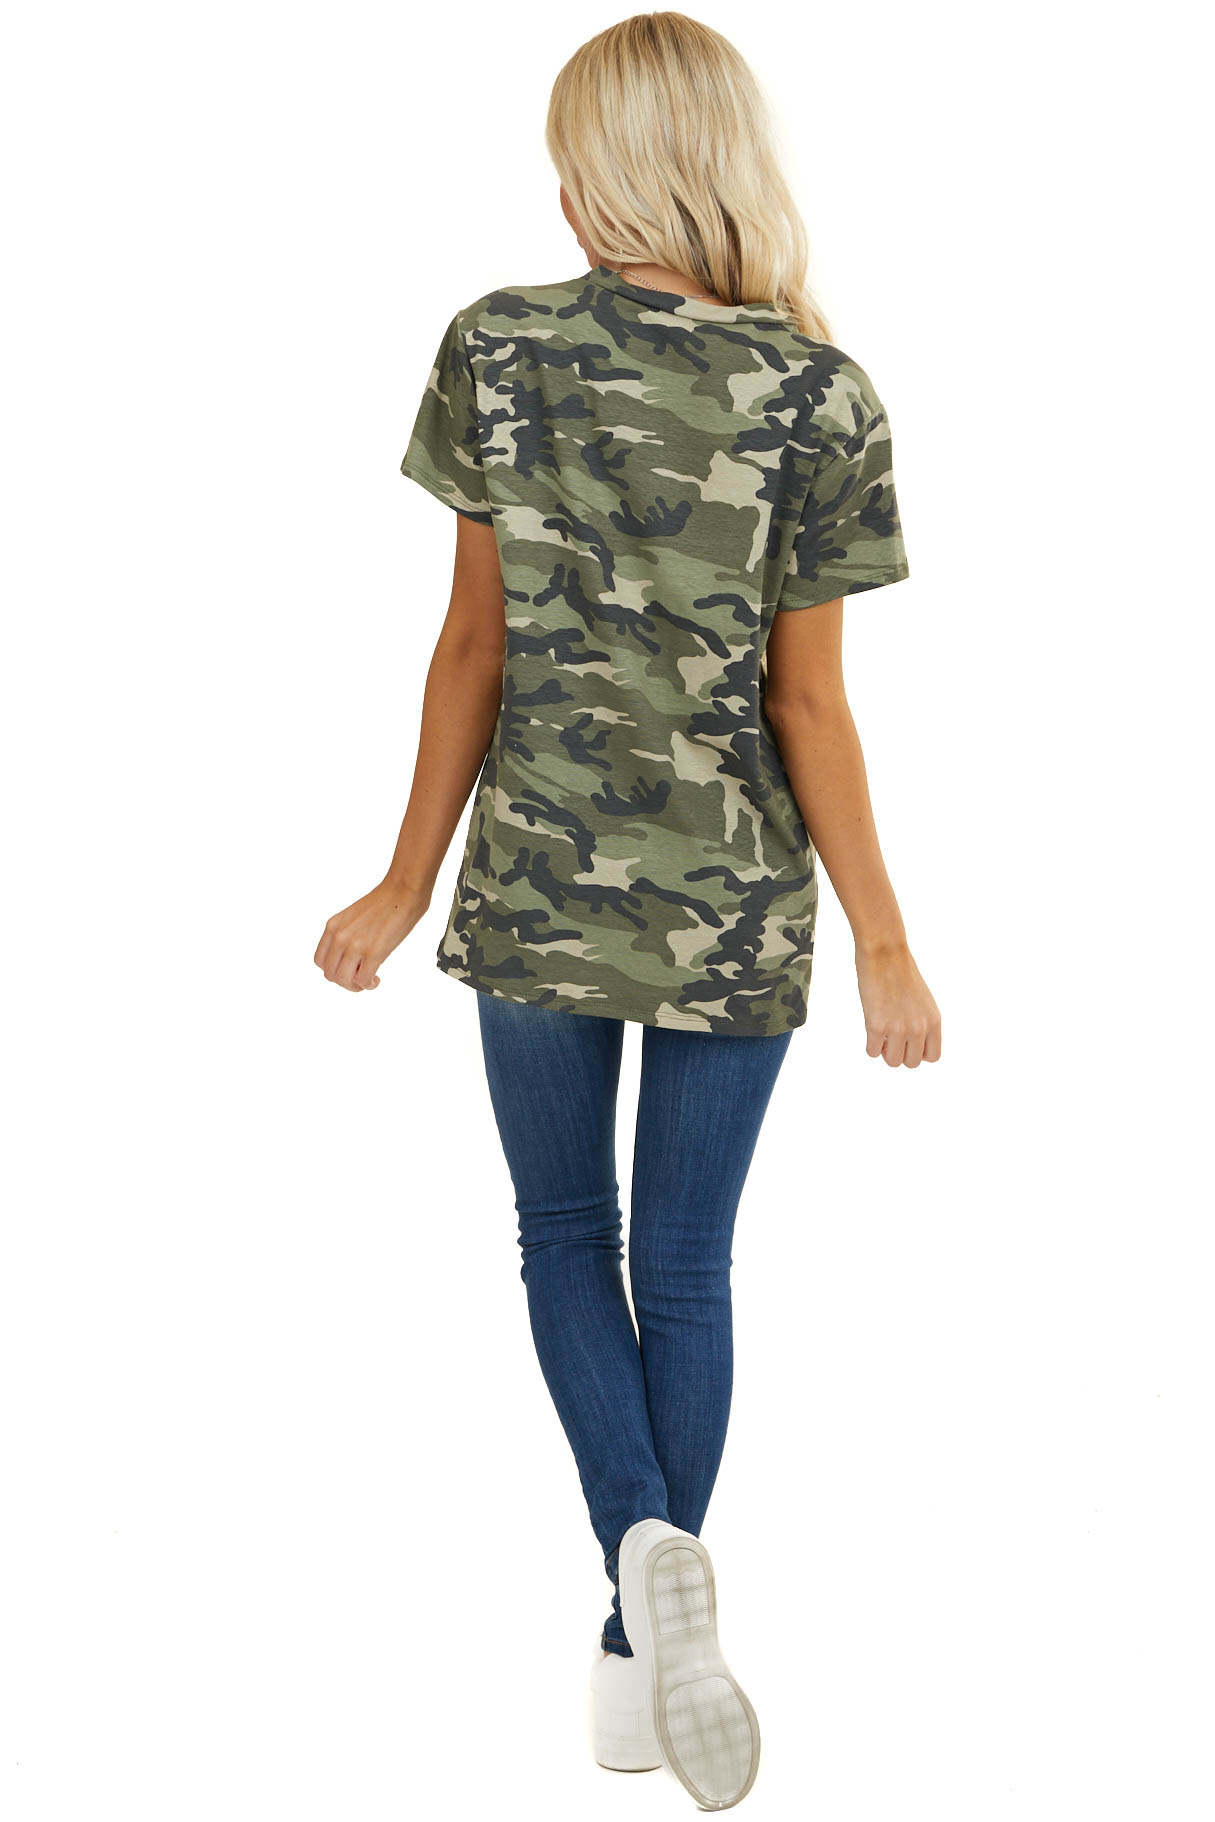 Moss Green Camo Print Short Sleeve Top with Front Twist